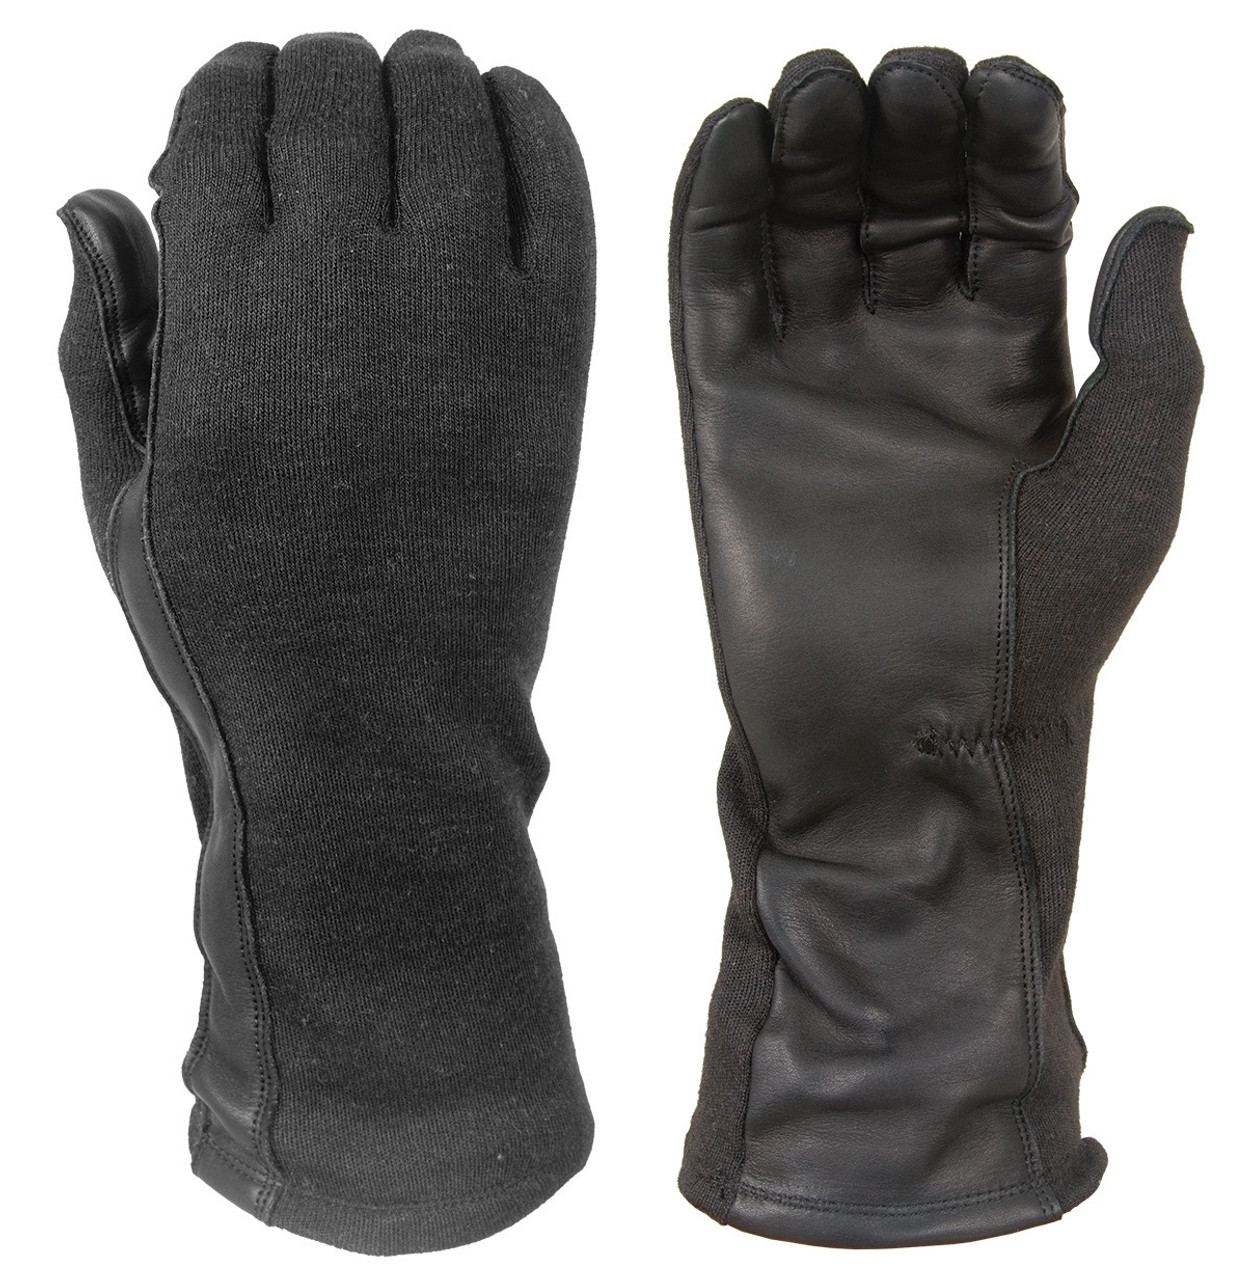 Damascus DNXF190-B, Police Riot Gear,  FLIGHT GLOVES WITH NOMEX® AND LEATHER PALMS, Tactical Gloves with DuPont Nomex® fabric and thread, Flame and flash protective to 800˚F (427˚C), made to the standard of U.S. Mil Spec